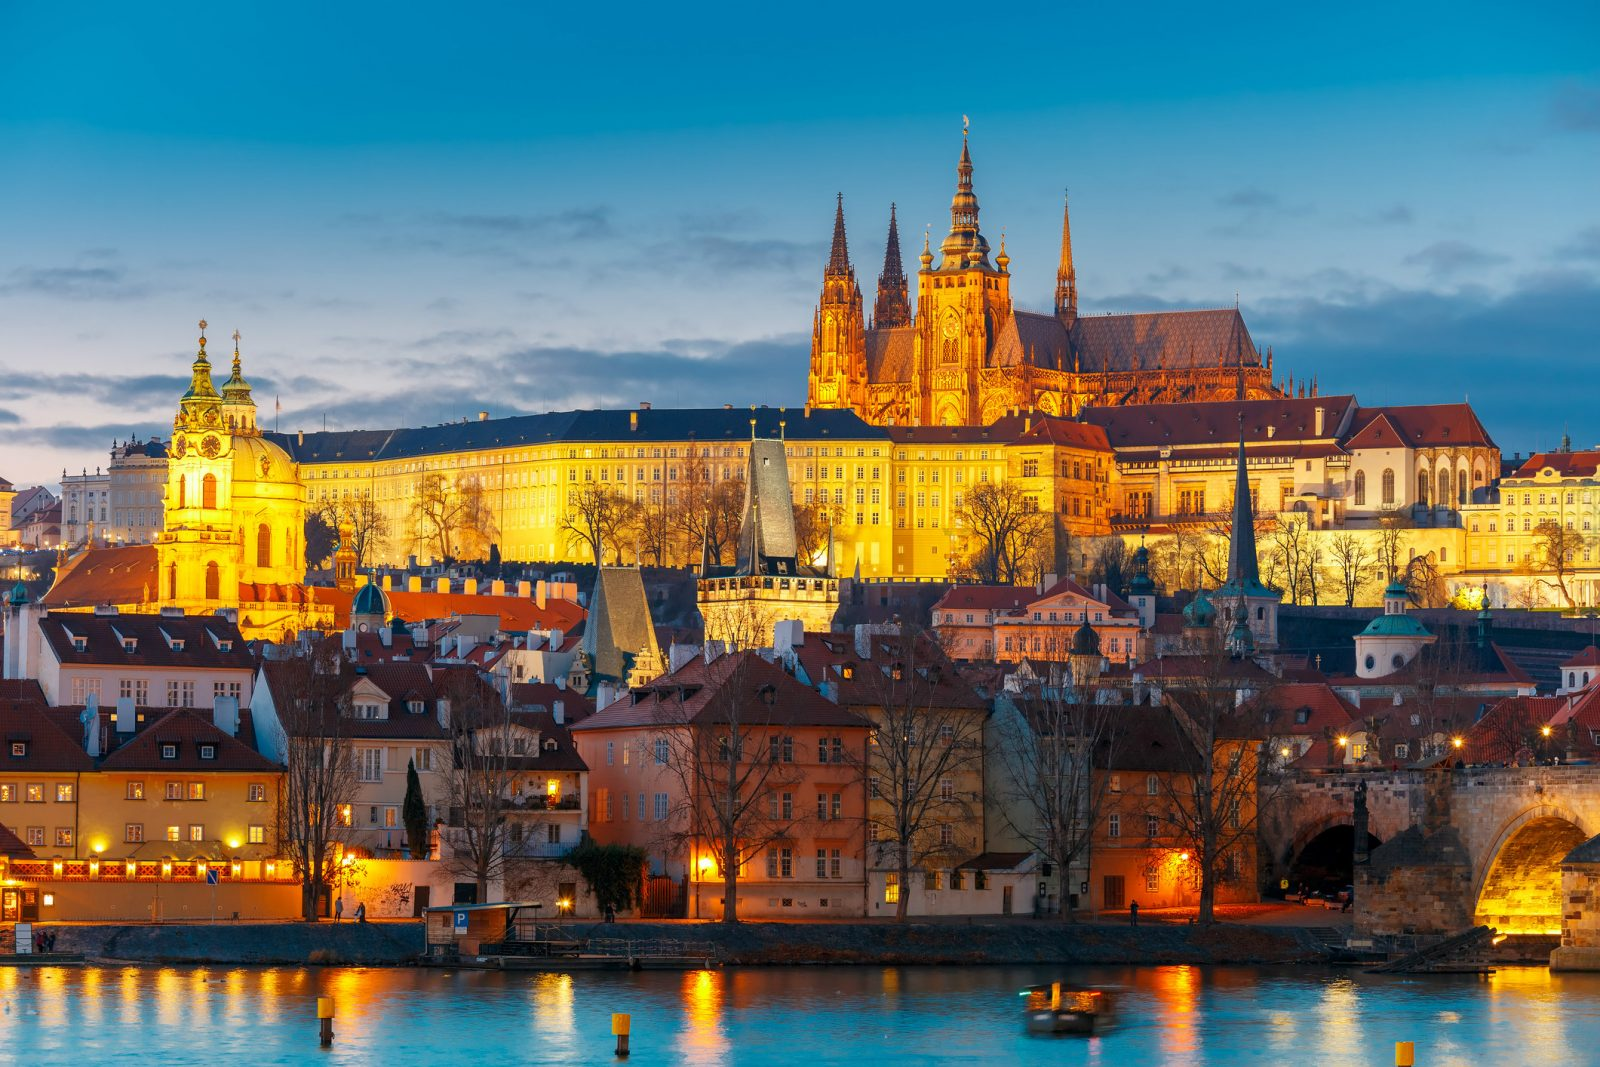 CNN: Prague Castle is one of the most beautiful castles in the world